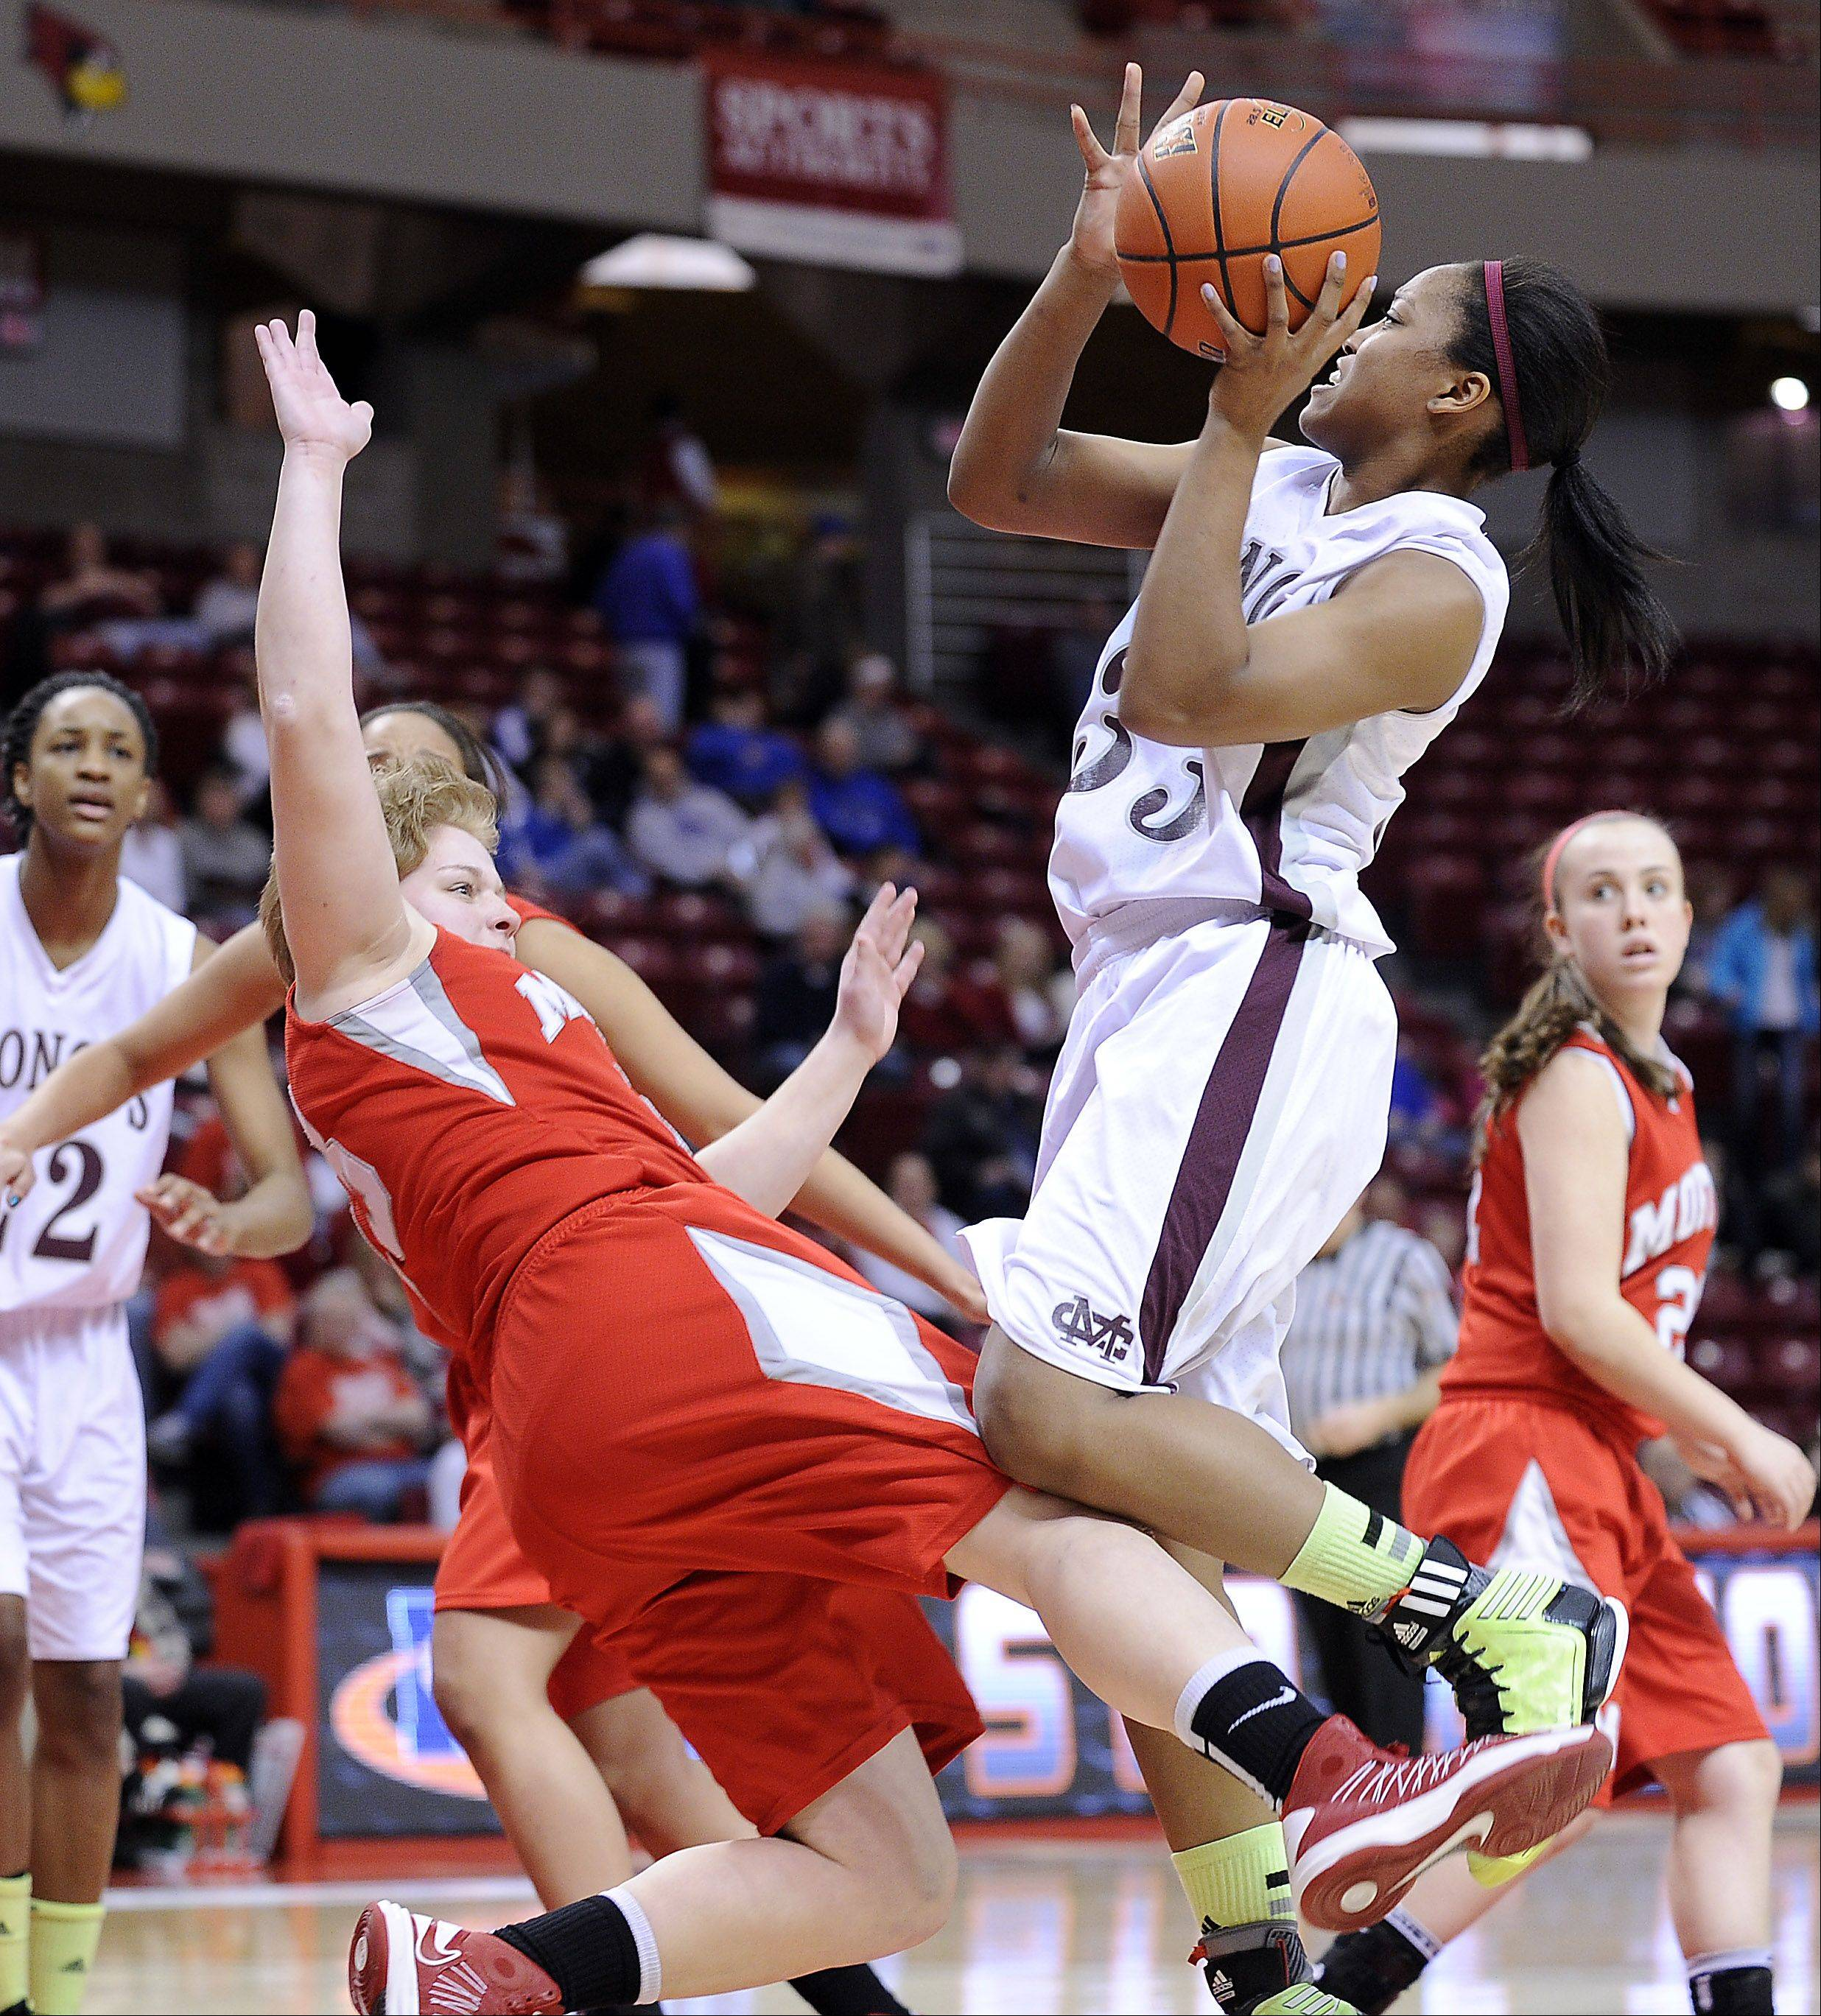 Montini's Sara Ross shoots for two in the first quarter of the Class 3A girls state basketball third place game in Normal on Saturday.